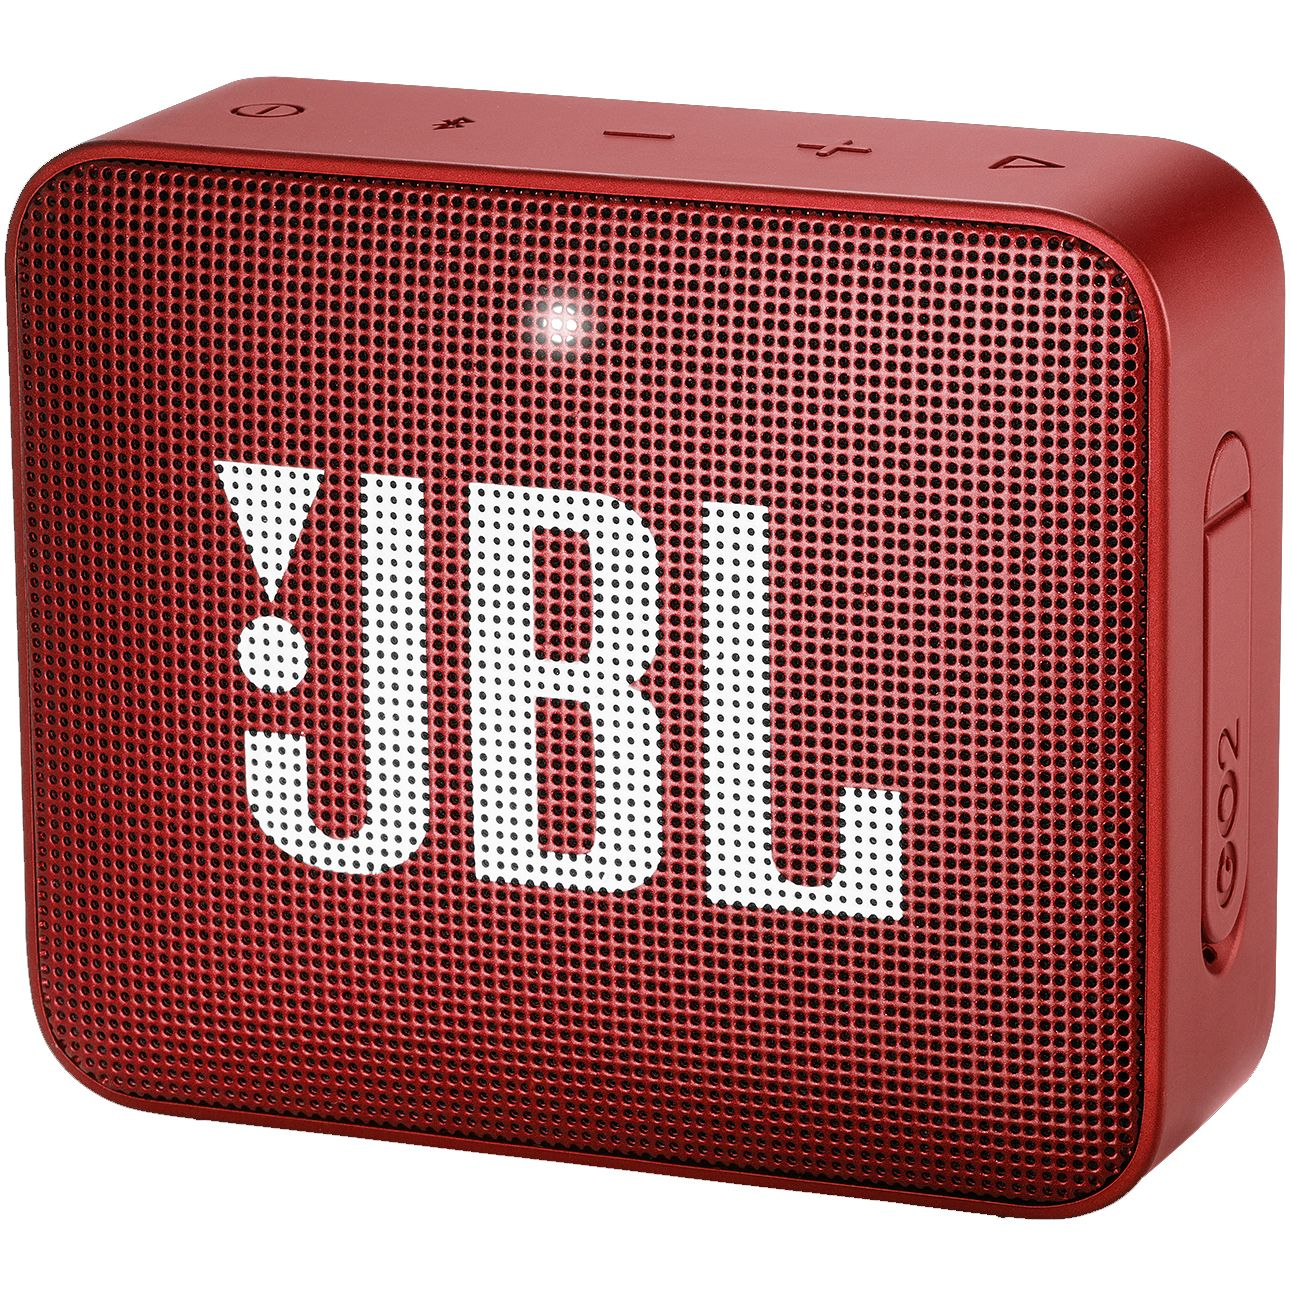 Boxa portabila JBL Go 2, Wireless, Bluetooth, IPX7 Waterproof, Ruby Red